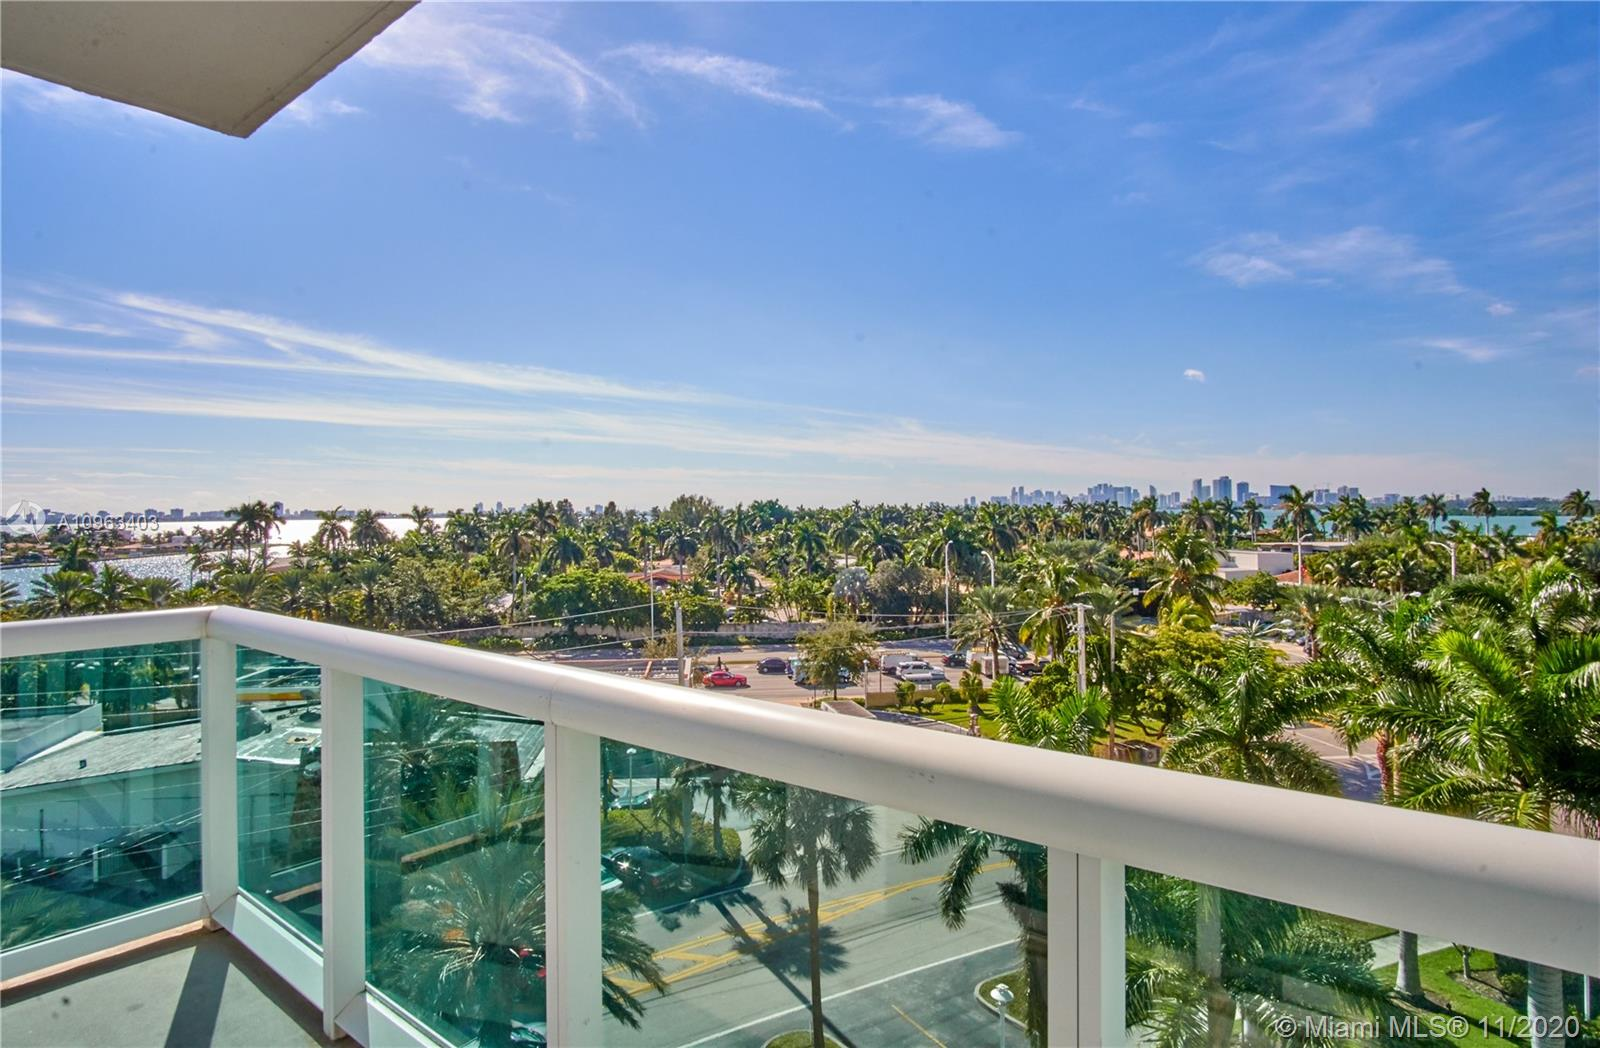 Spacious three bedroom residence at 360 Condominium. This corner unit features an open floor plan with floor to ceiling windows and sliding doors which offer beautiful views of the bay, N. Bay Island, downtown Miami and the resort style pool area. It boasts two balconies, a modern kitchen with GE Profile appliances, a large master bath with Roman tub and marble shower, finished closets and roller shades. There is plenty of closet and storage space plus this condo comes with two parking spaces. 360 Condo is a gated community offering 24hr. security, concierge, private marina, free valet, two pools, sauna and gym.